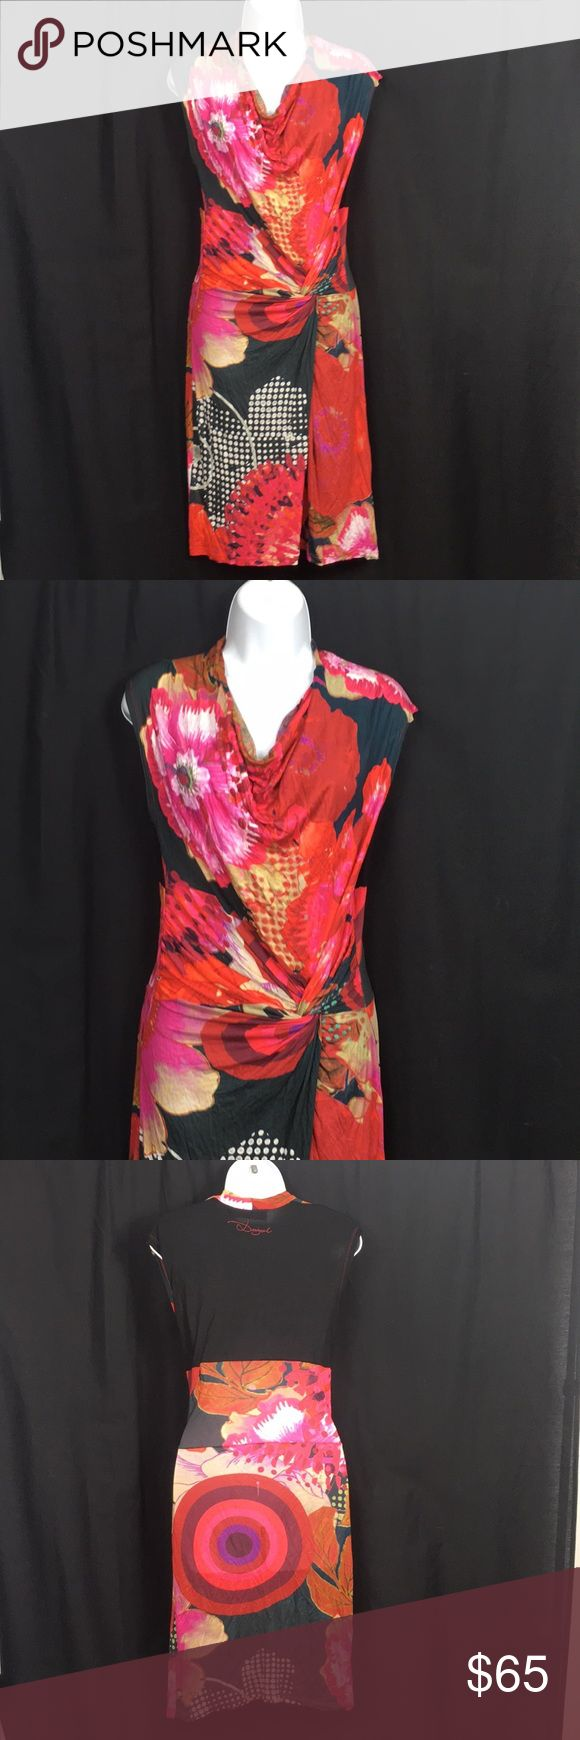 """Desigual Small Gorgeous Pencil Dress Desigual size small absolutely beautiful Pencil dress ... 43"""" top to bottom laying flat ...18"""" armpit to armpit....BUNDLE 3 or More SAVE 20%!!! Spend 💲20 or more and choose a FREE GIFT!!!!Choose your free gift by commenting on the item..... items with a 🎁 qualify as a free gift! Desigual Dresses"""